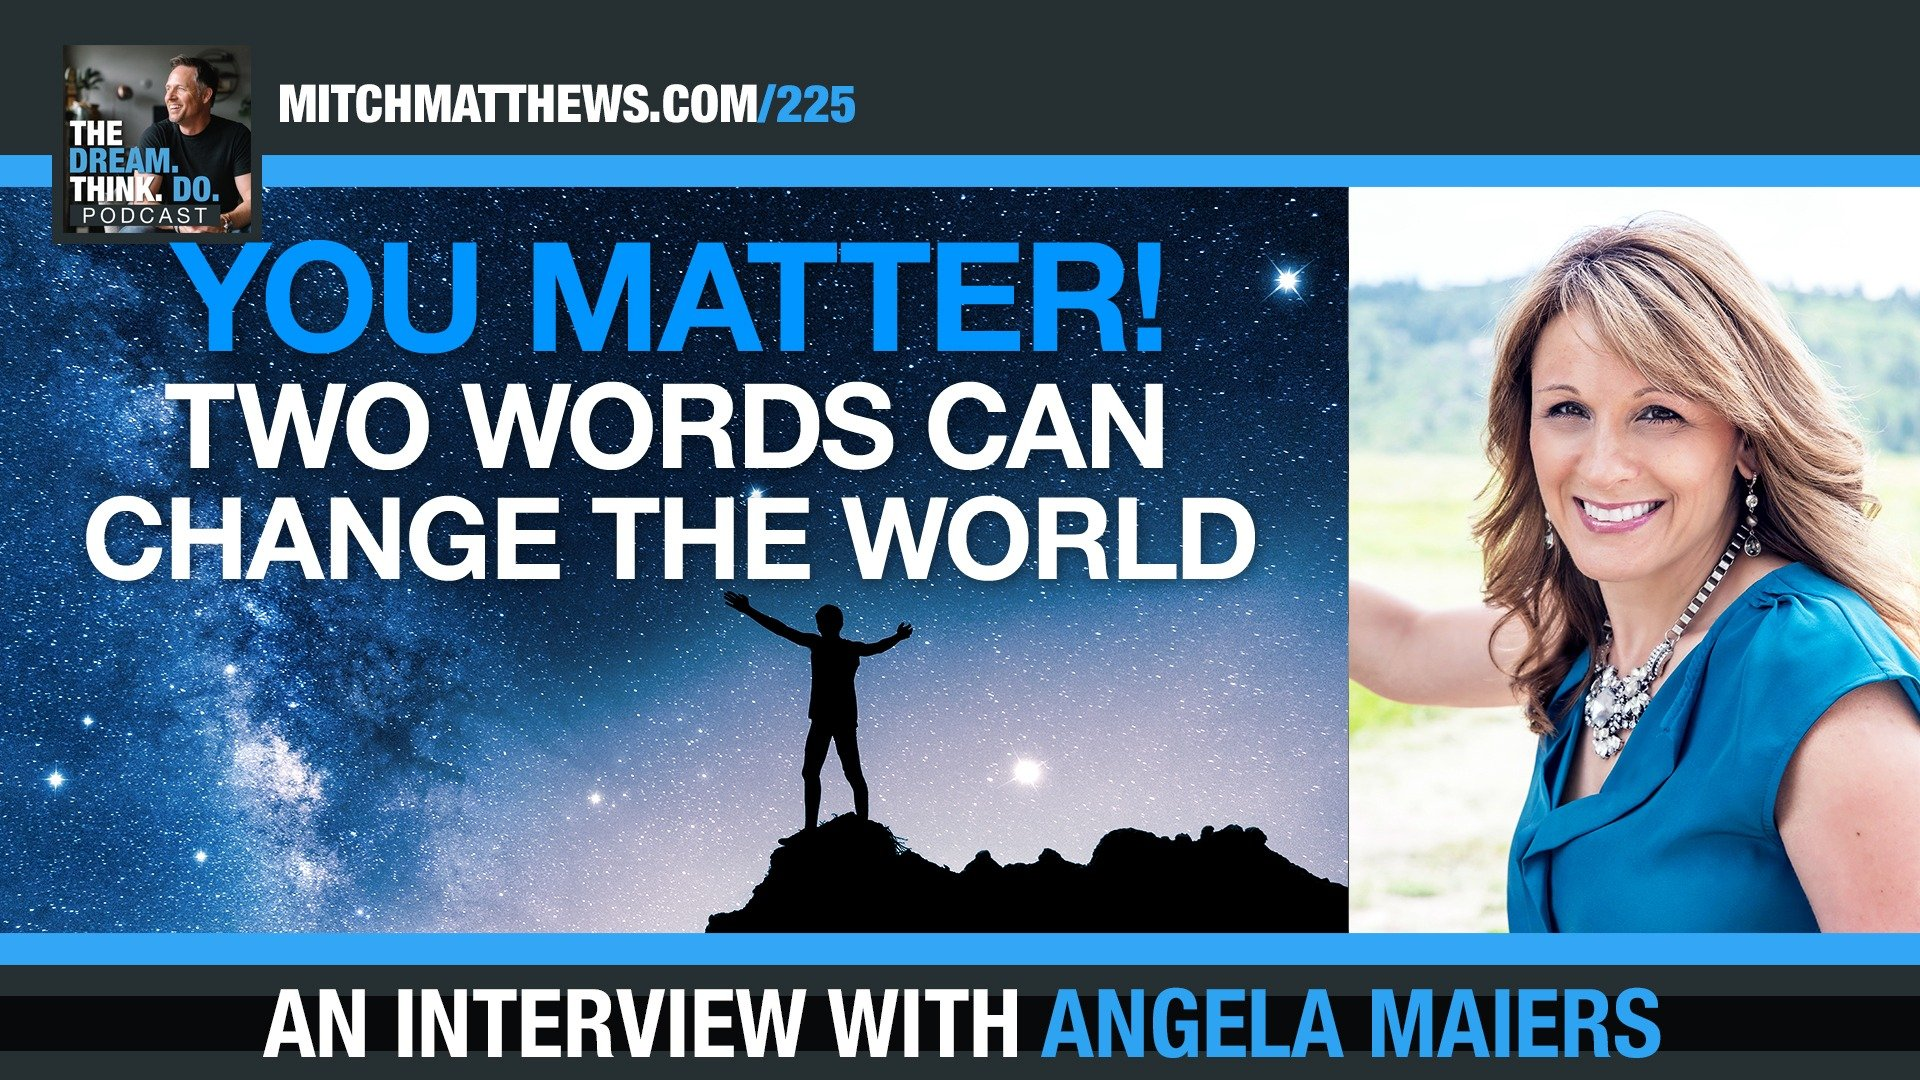 An interview with With Angela Maiers